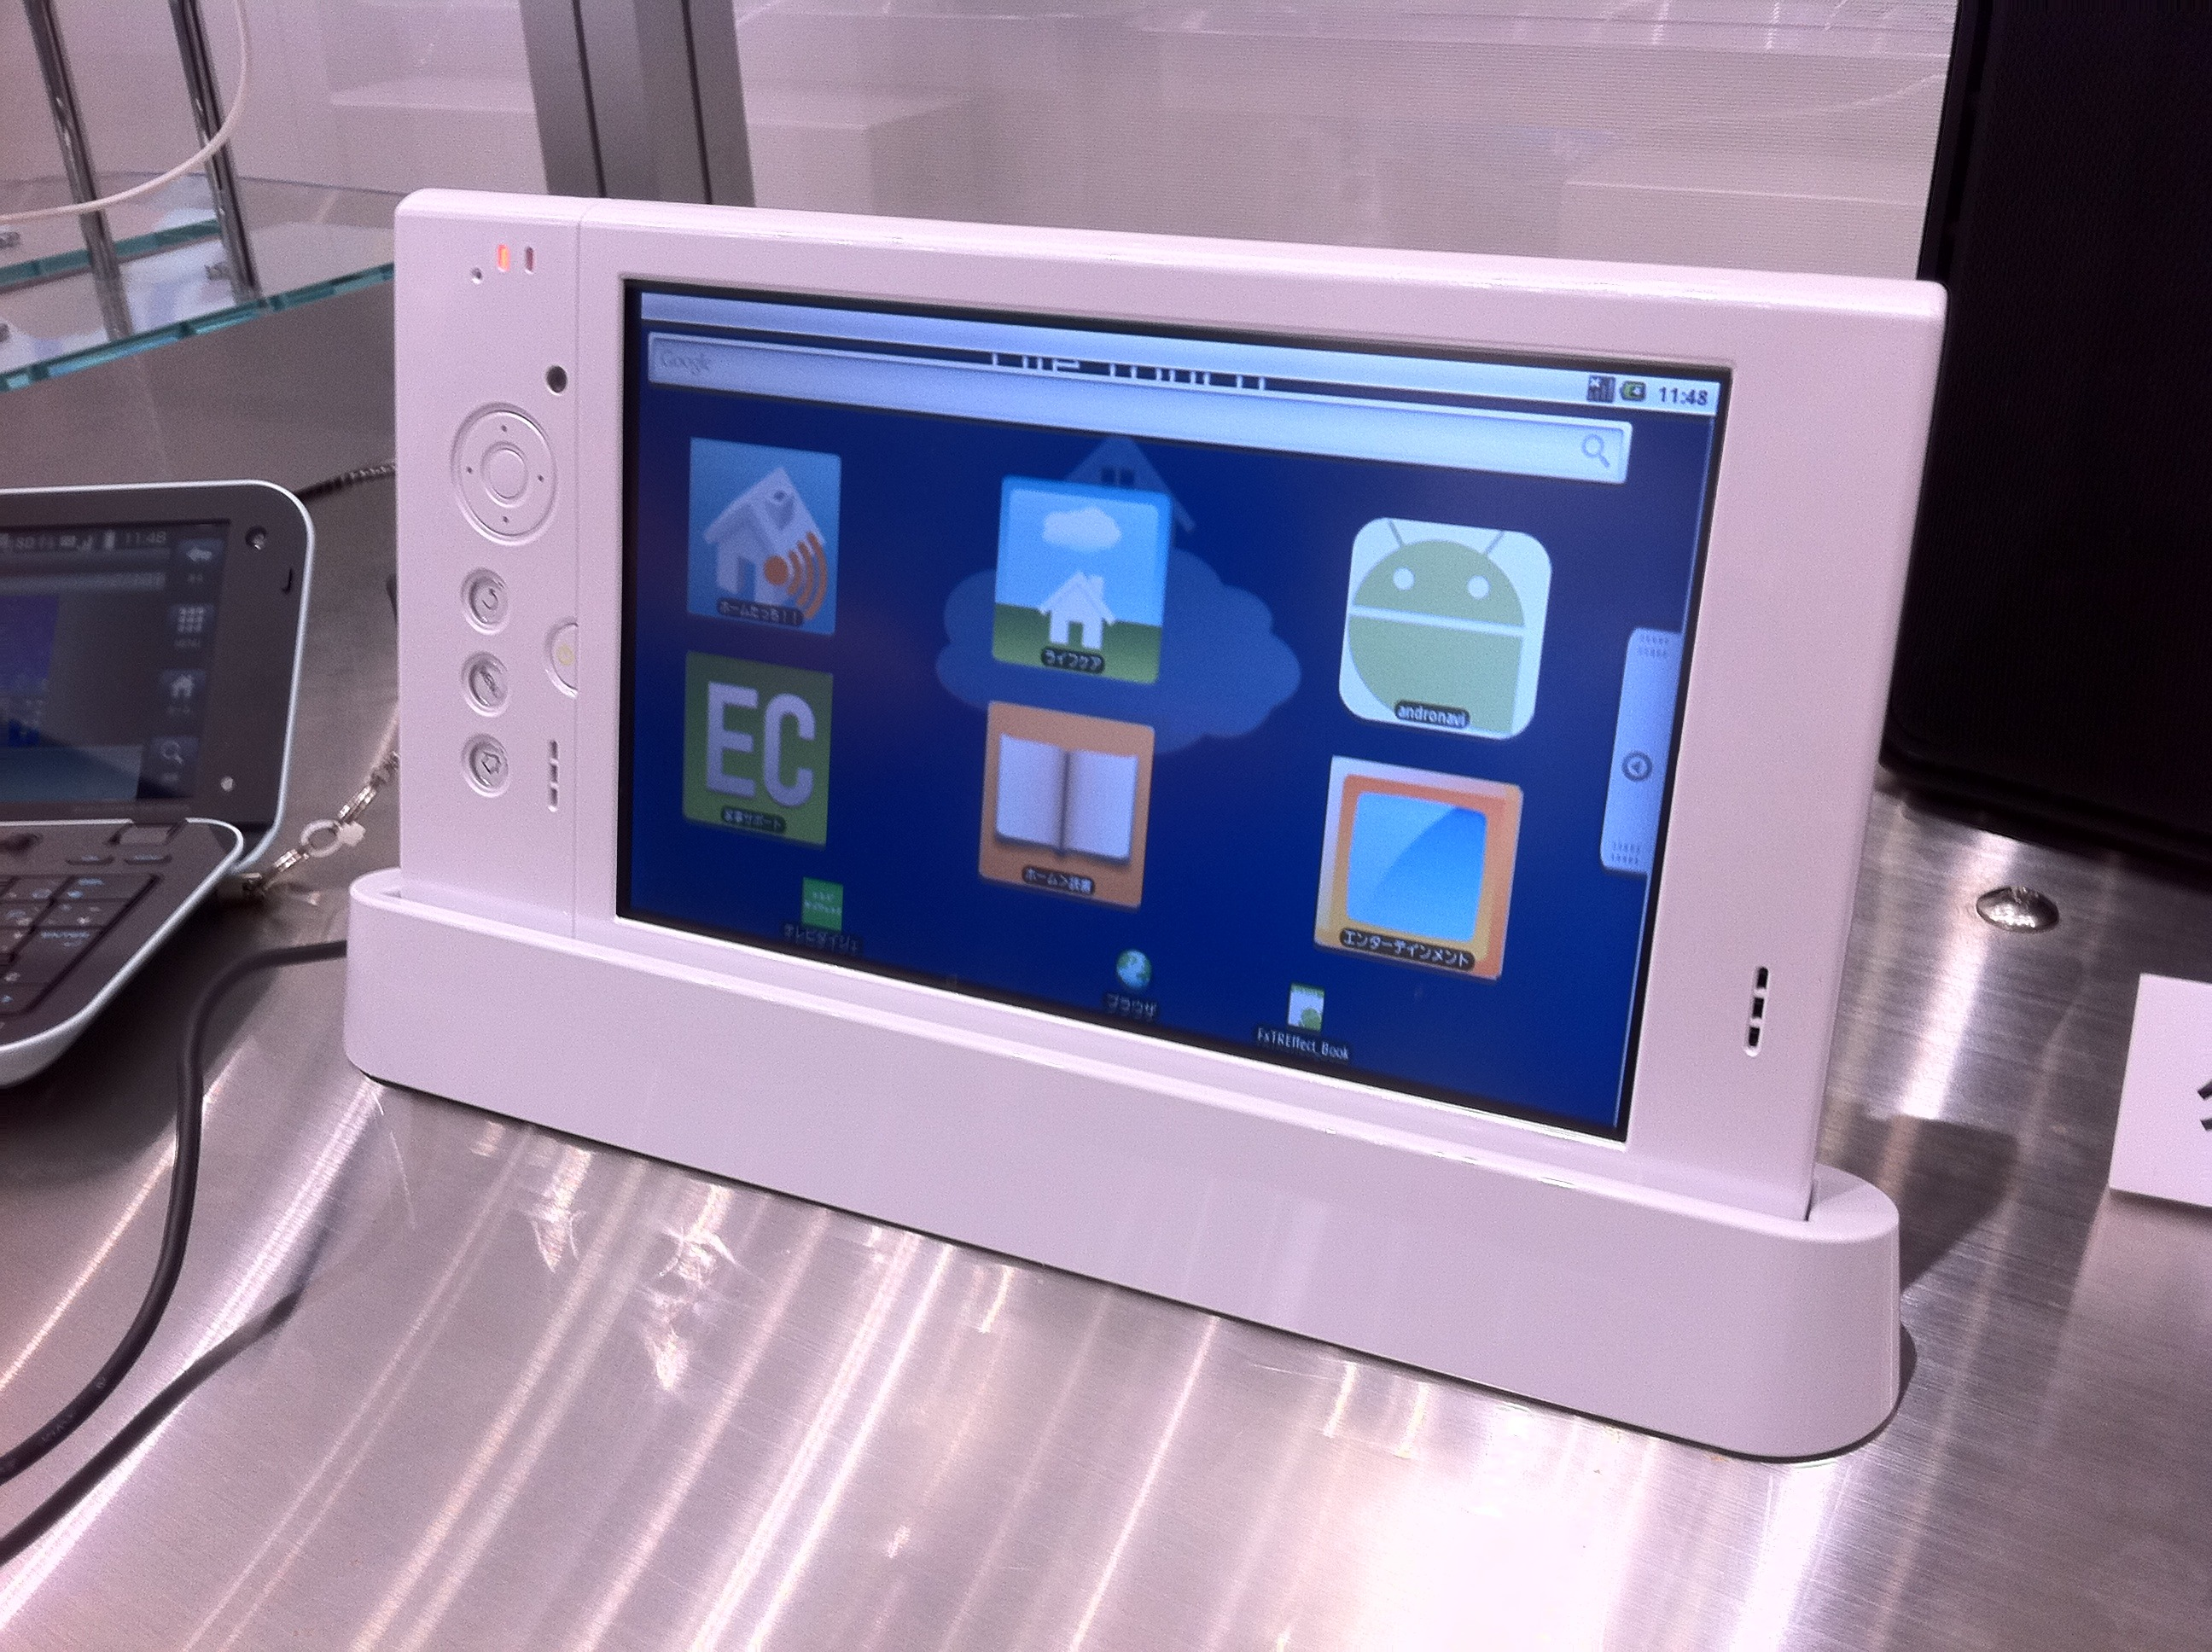 The Lifetouch tablet is running Android 2.1 with NEC's own software running on top of it. Also included: ARM processor, 7-inch touchscreen, accelerometer, docking station, SD card slot.